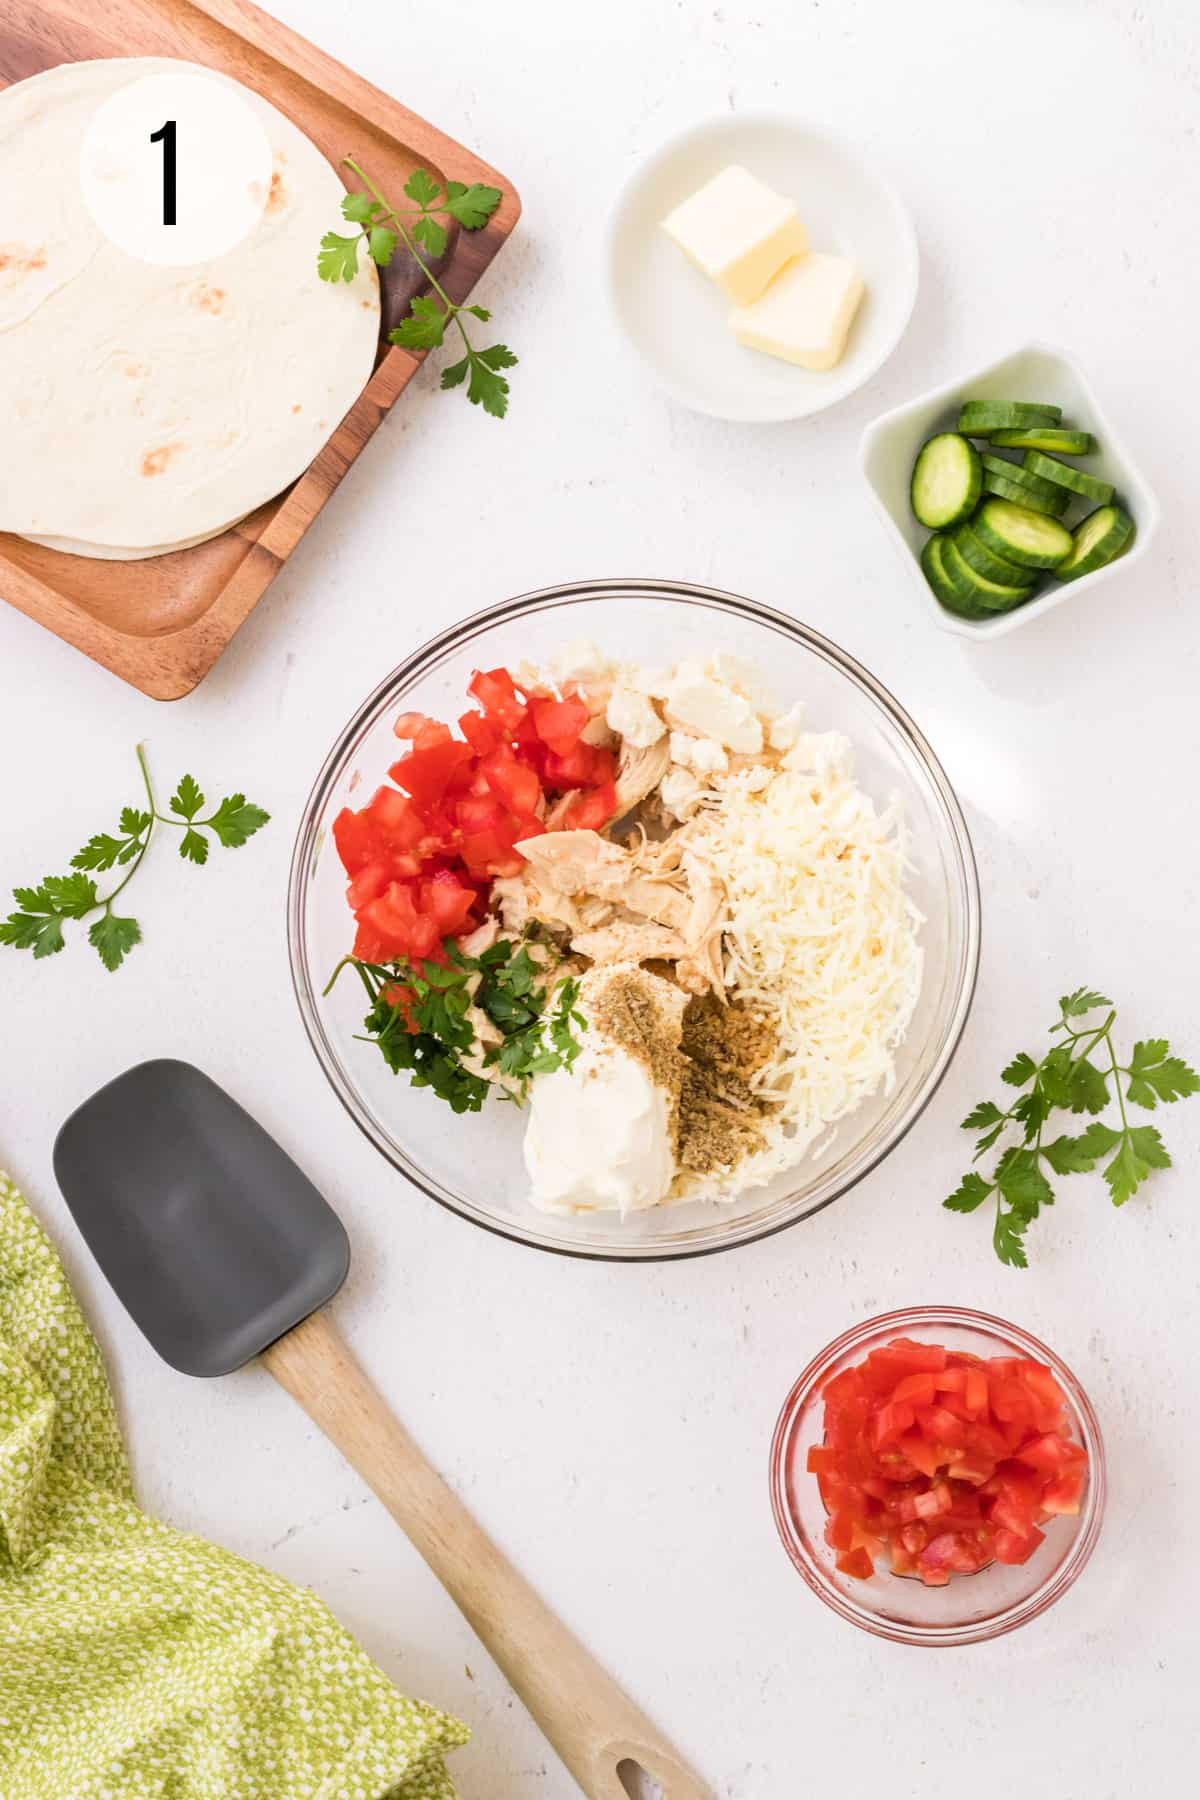 Glass bowl with cheeses, diced tomatoes, herbs and shredded chicken and small bowl of tomatoes and spatula in lower foreground and sliced cucumbers, butter and tray of tortillas in upper background.